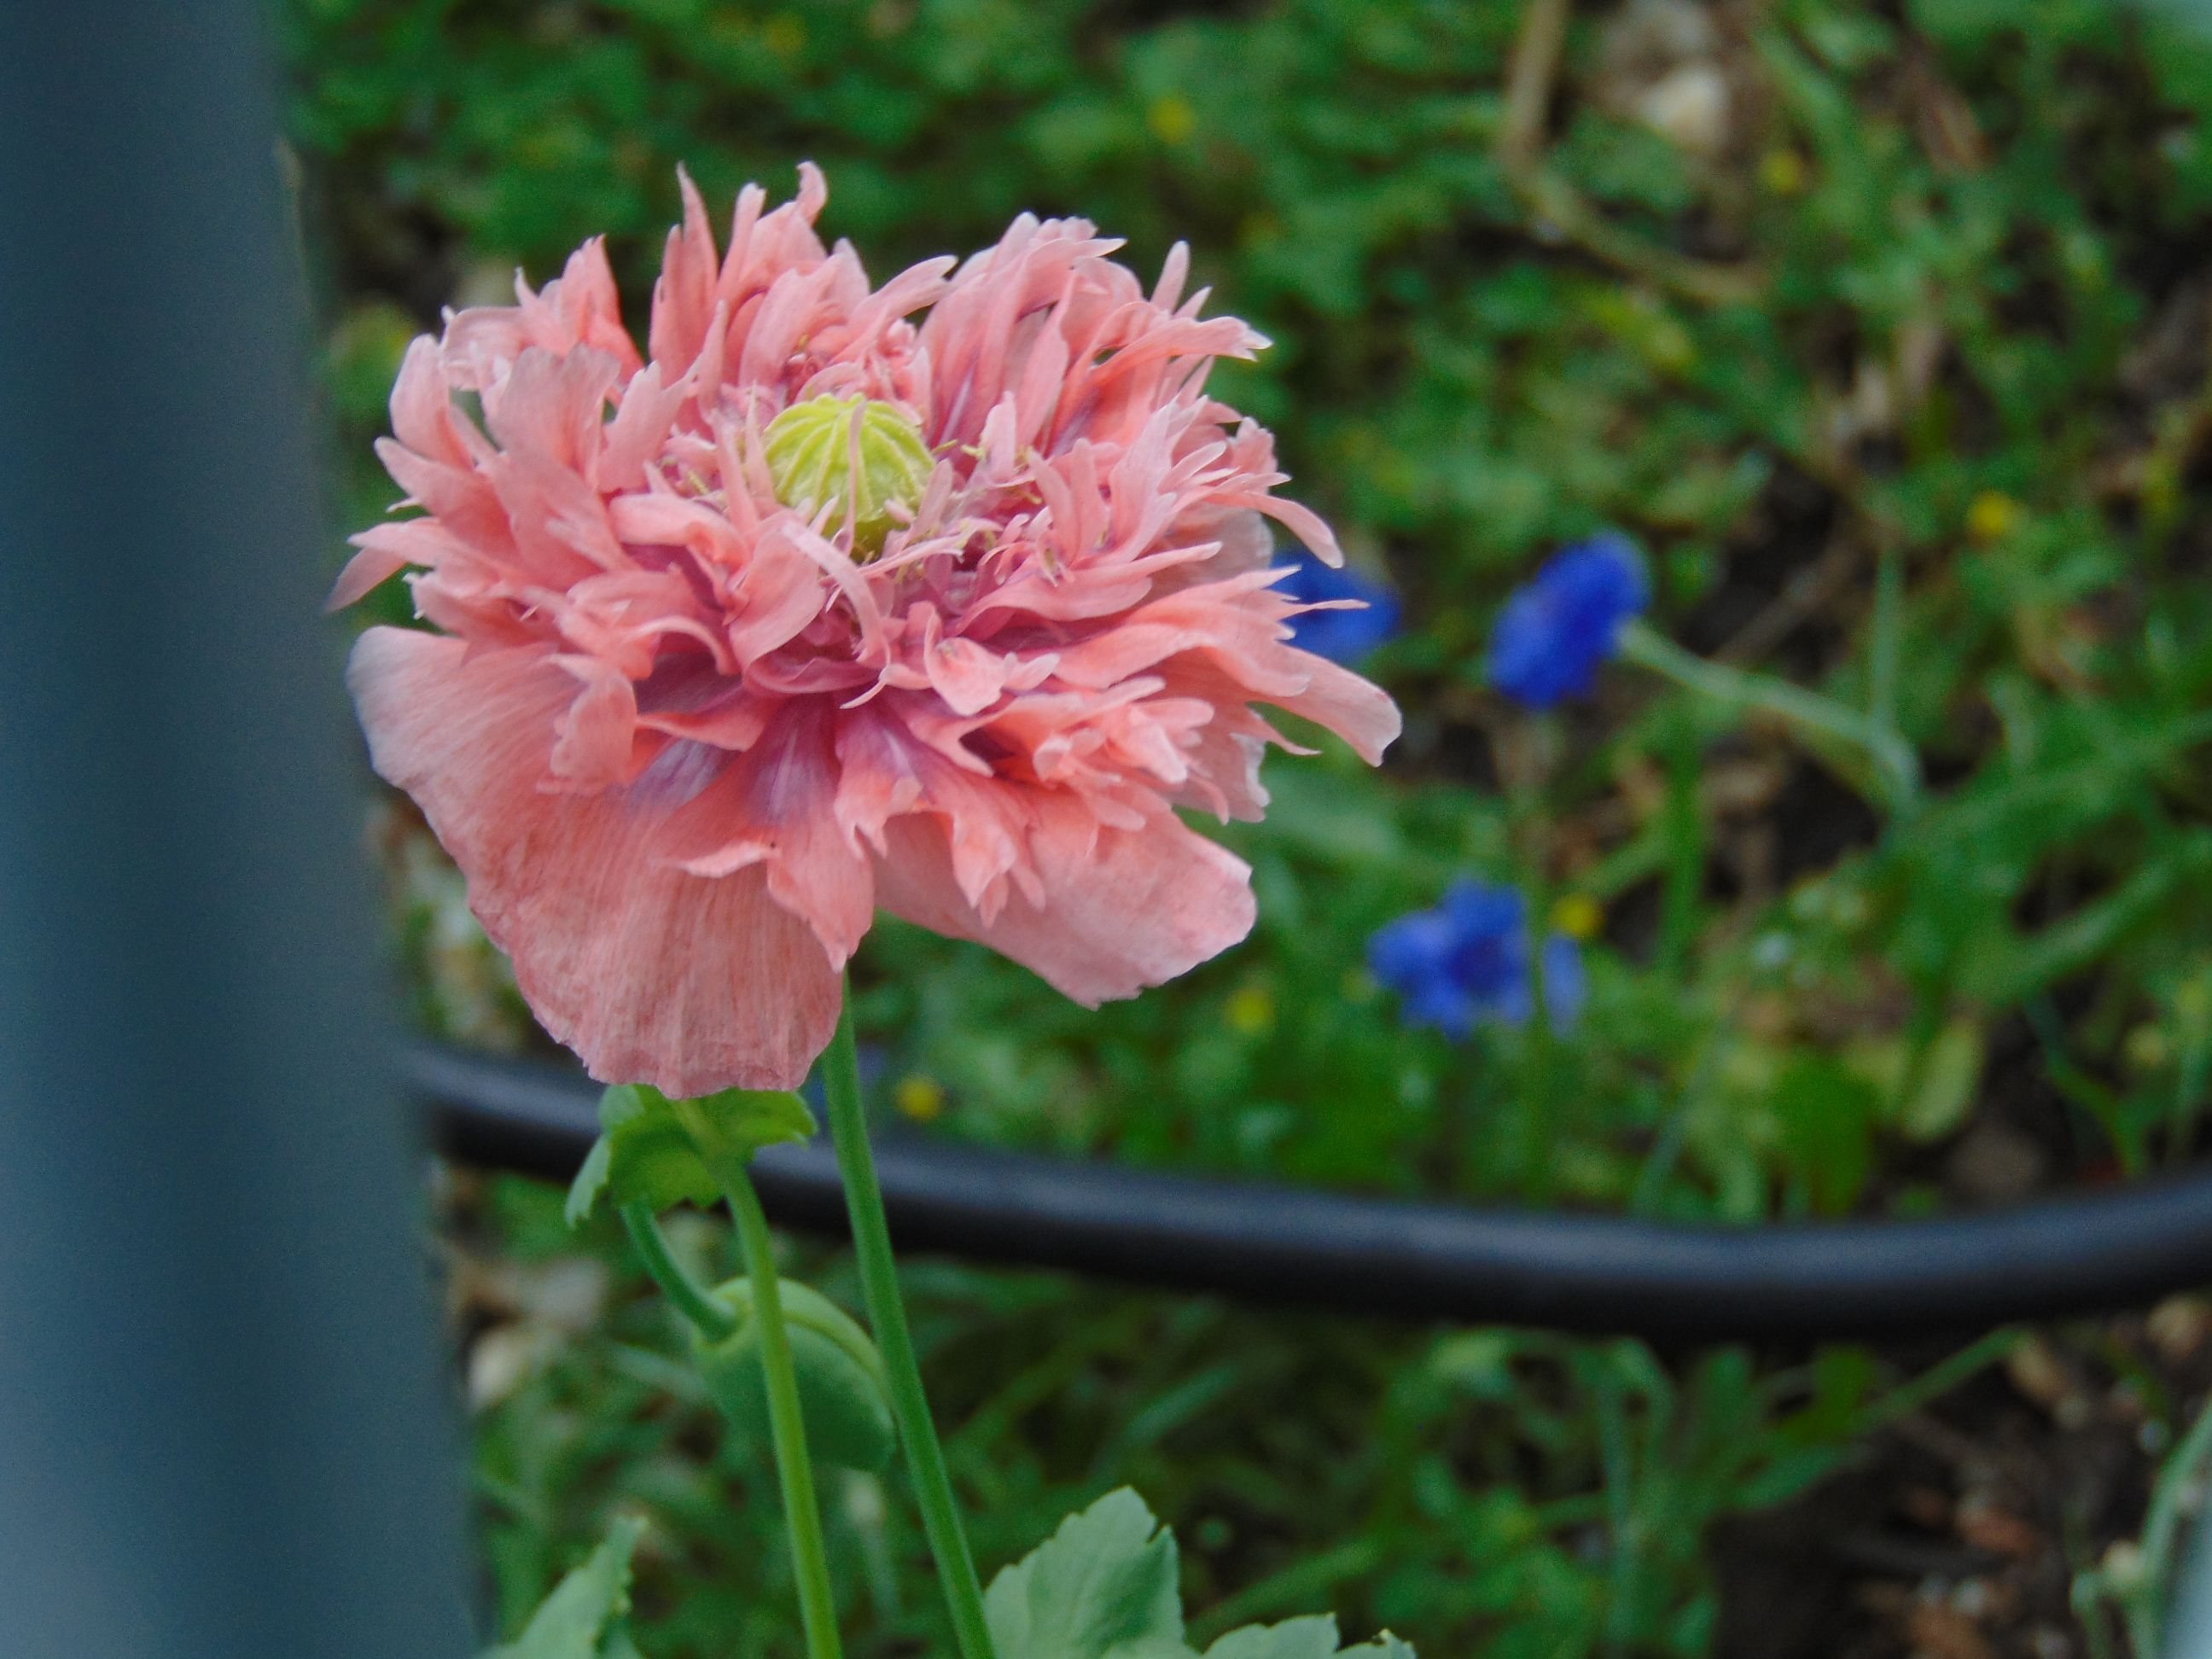 Pink Peony Poppies with Bachelor Buttons in the background. MS. Aug 2015